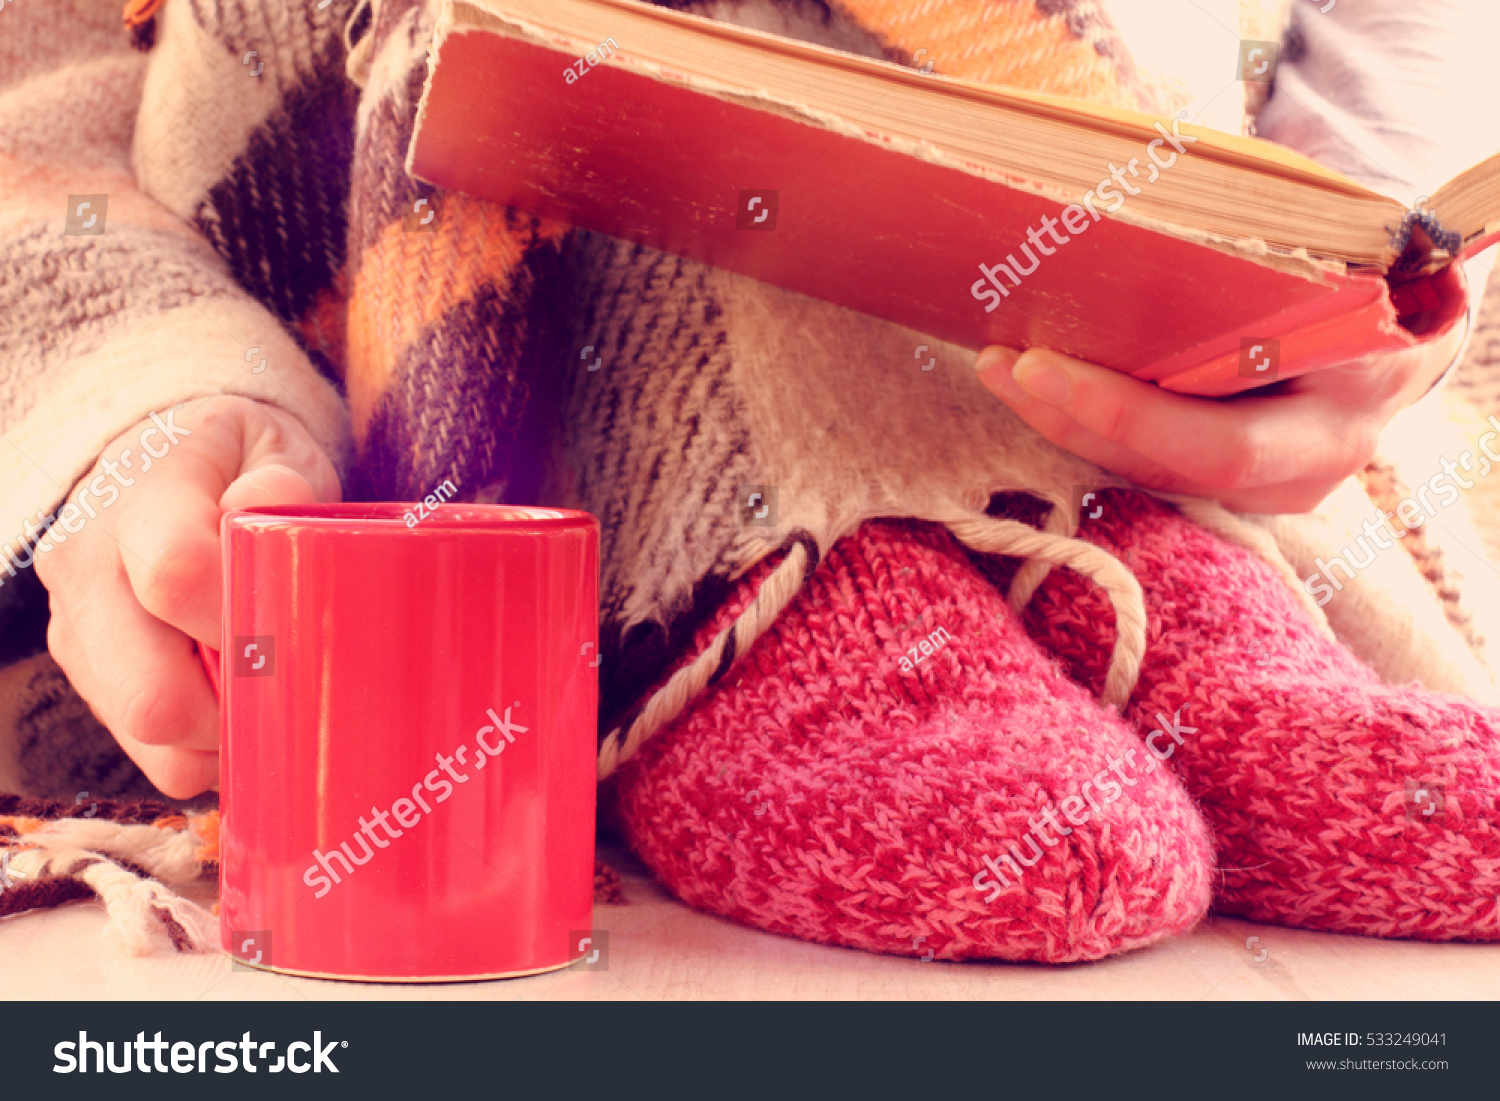 red book a cup and socks in cozy warming home environment self on winter vacation